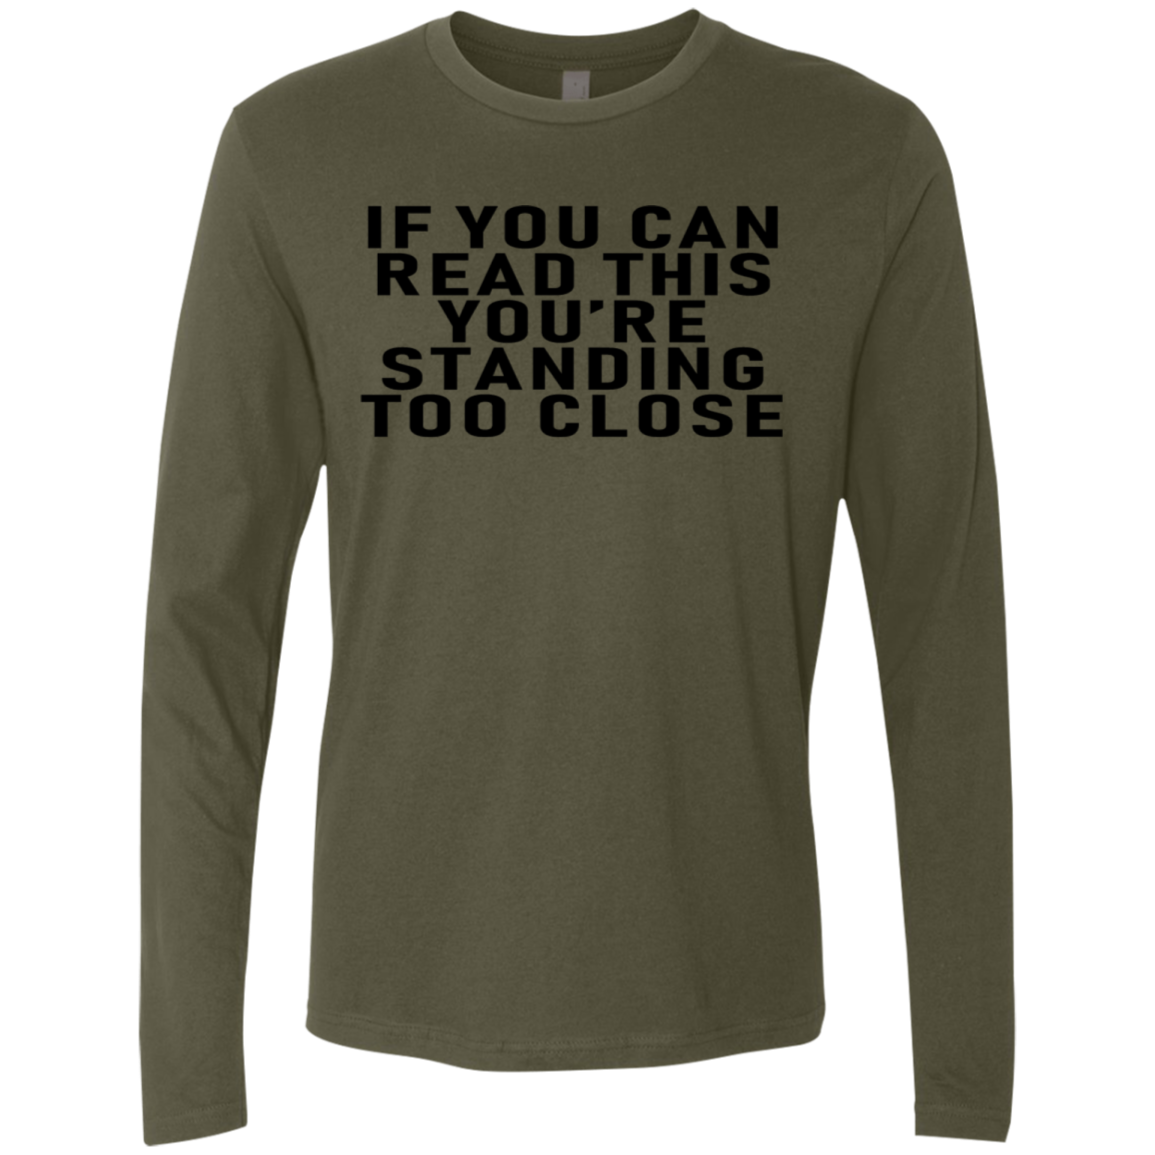 If You Can Read This You're Standing Too Close Men's Long Sleeve Tee